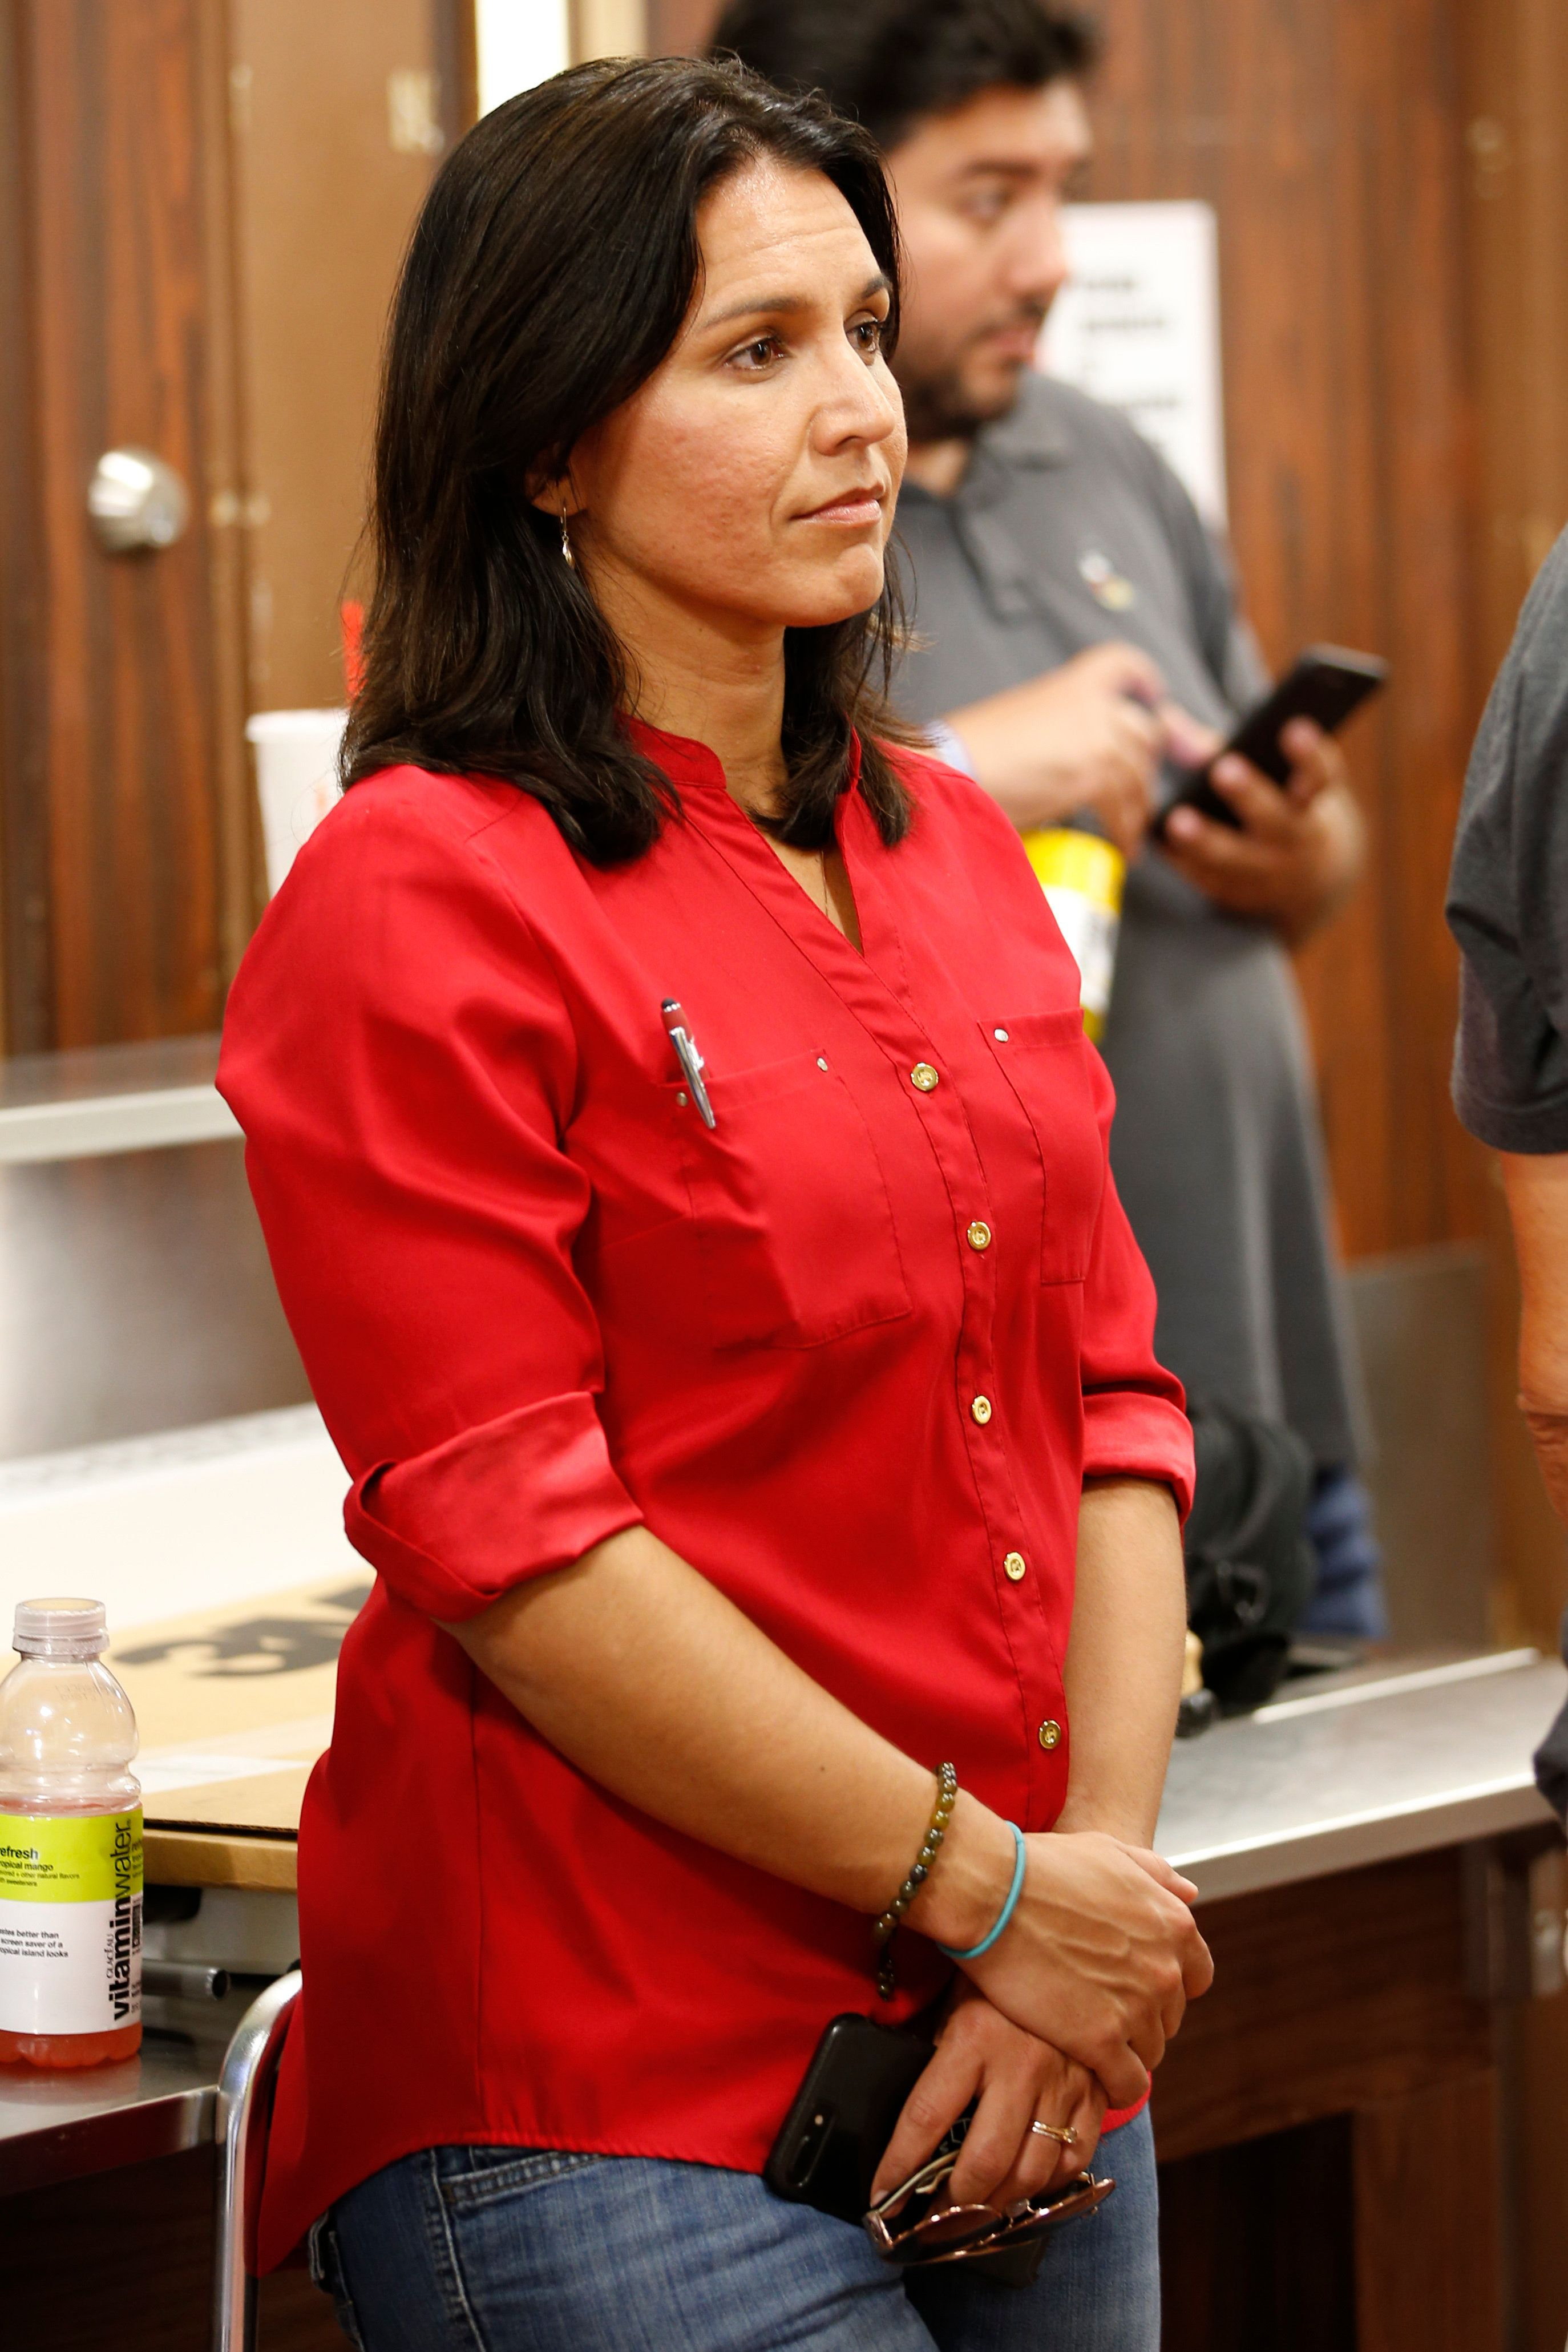 US Rep. Tulsi Gabbard, D-Hawaii, attends a community meeting at Pahoa High School, Friday, May 4, 2018, in Pahoa, Hawaii. Gabbard, who serves in the National Guard, will be activated tomorrow and will serve in the lava affected areas of the Big Island. (AP Photo/Marco Garcia)